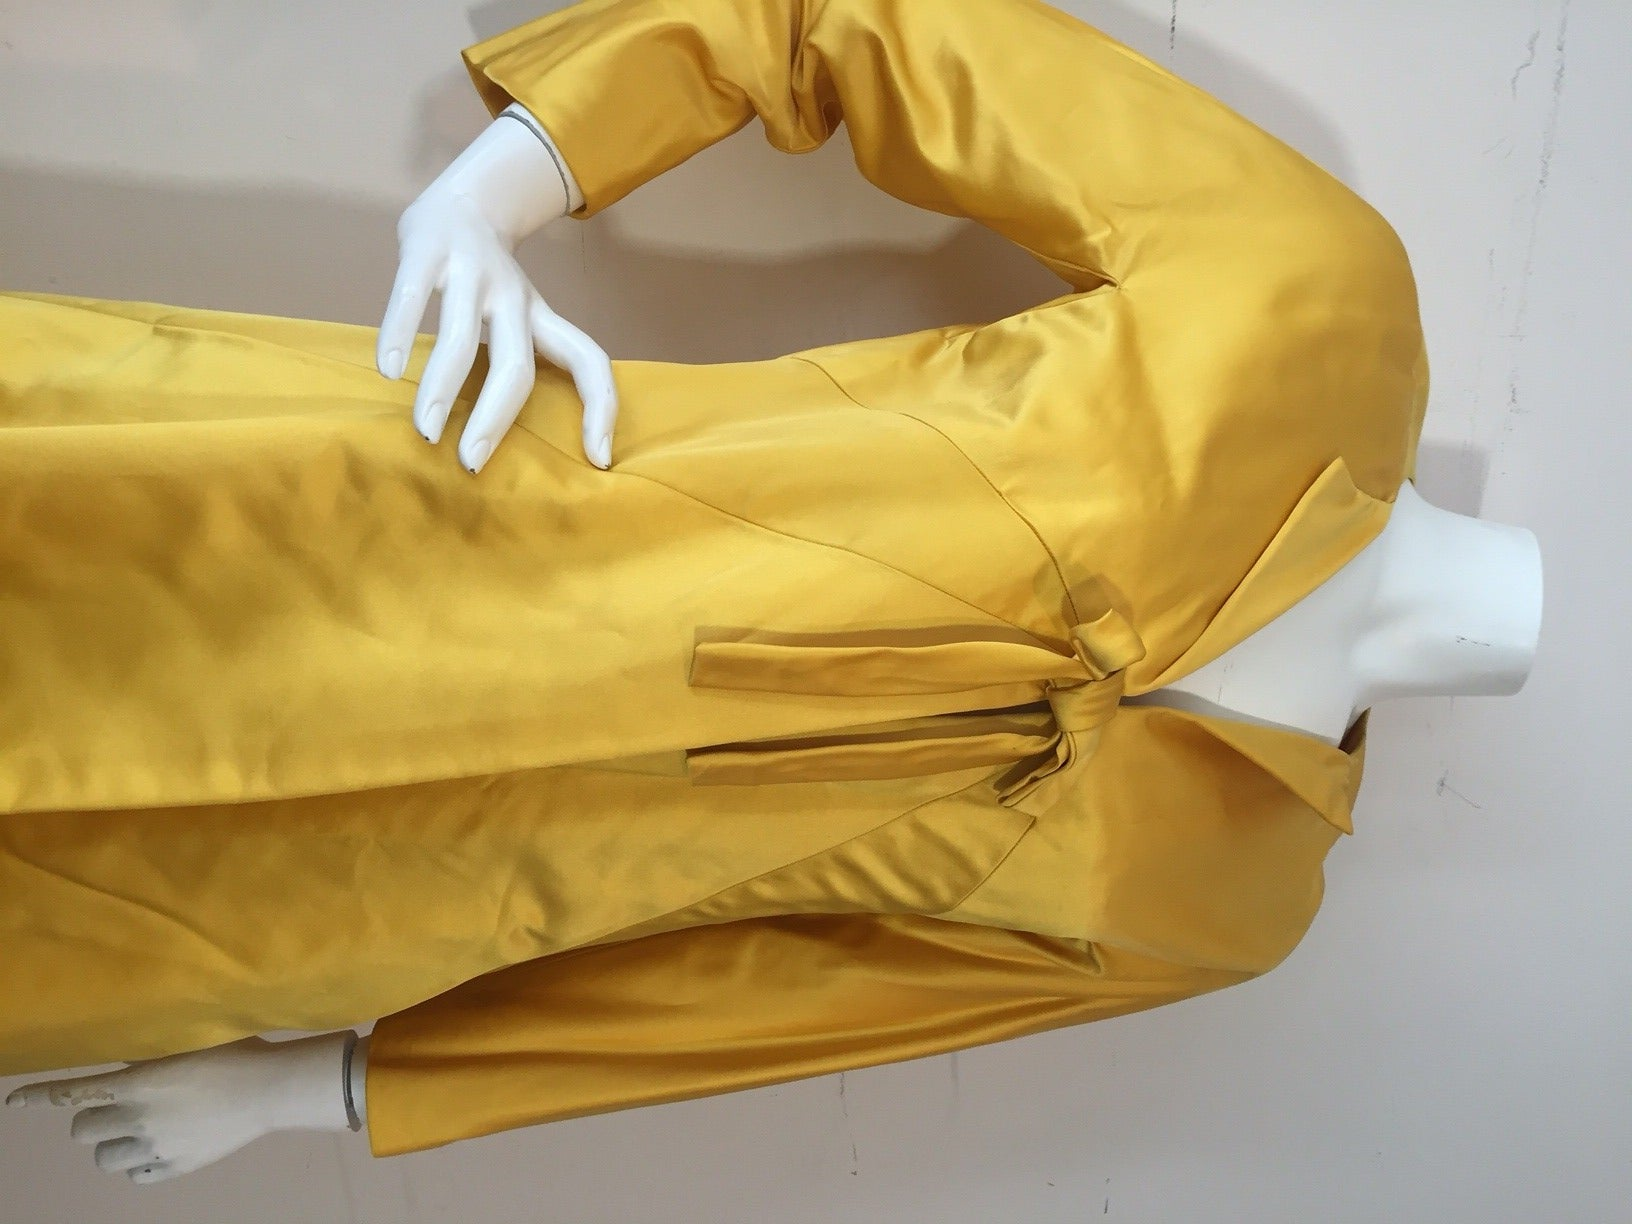 1960s Canary Yellow Silk Evening Coat with Sunburst Seaming 5